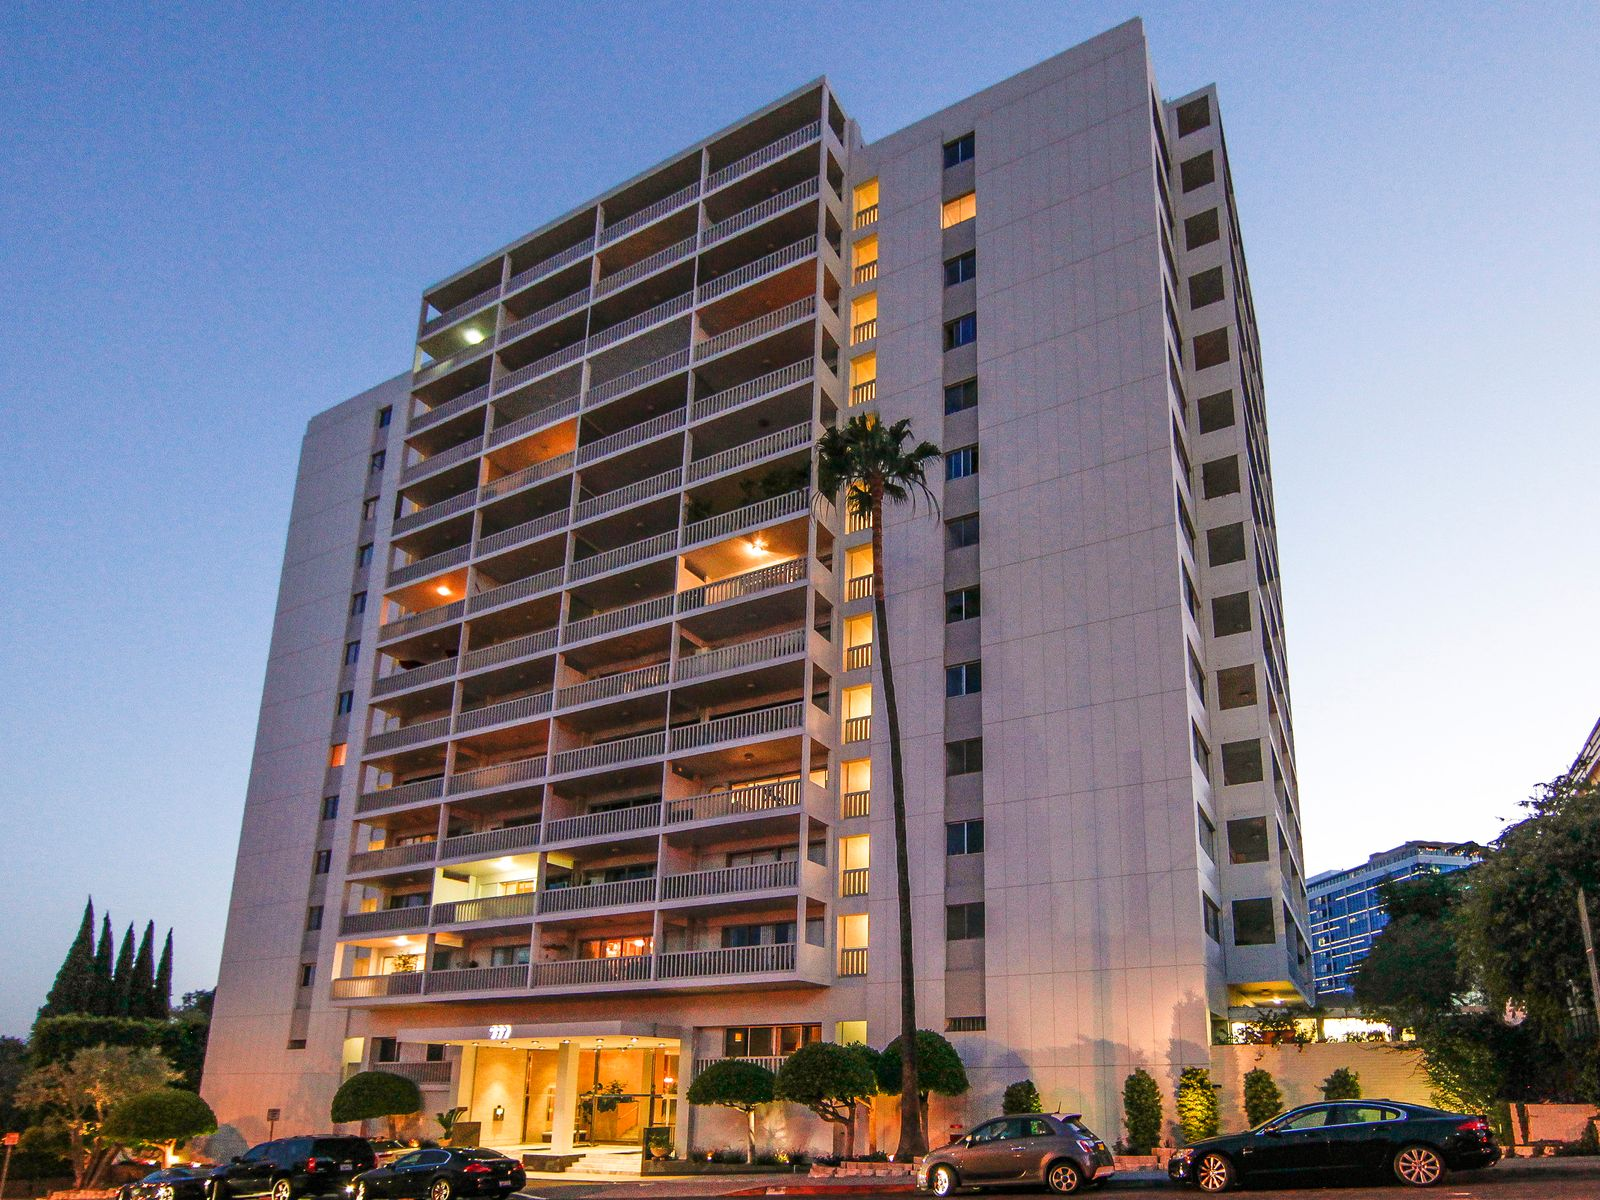 Sleek & Modern 1-Bedroom Condo, West Hollywood CA Condominium - Los Angeles Real Estate